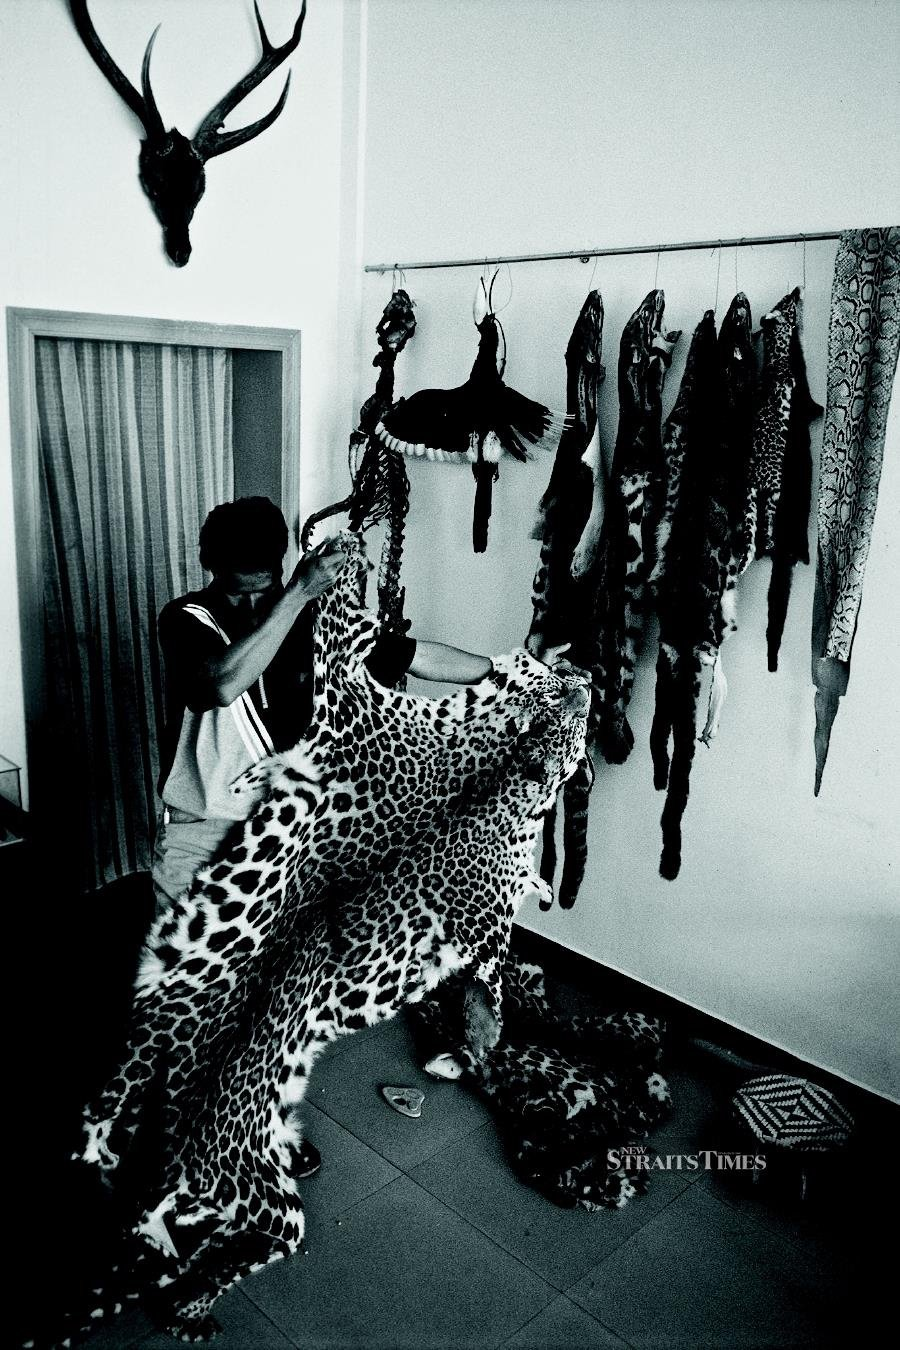 A buyer inspects leopard skins at a retail outlet in Mong La, Special Region 4, Shan State, Myanmar, 2010. Photo by Adam Oswell for TRAFFIC.